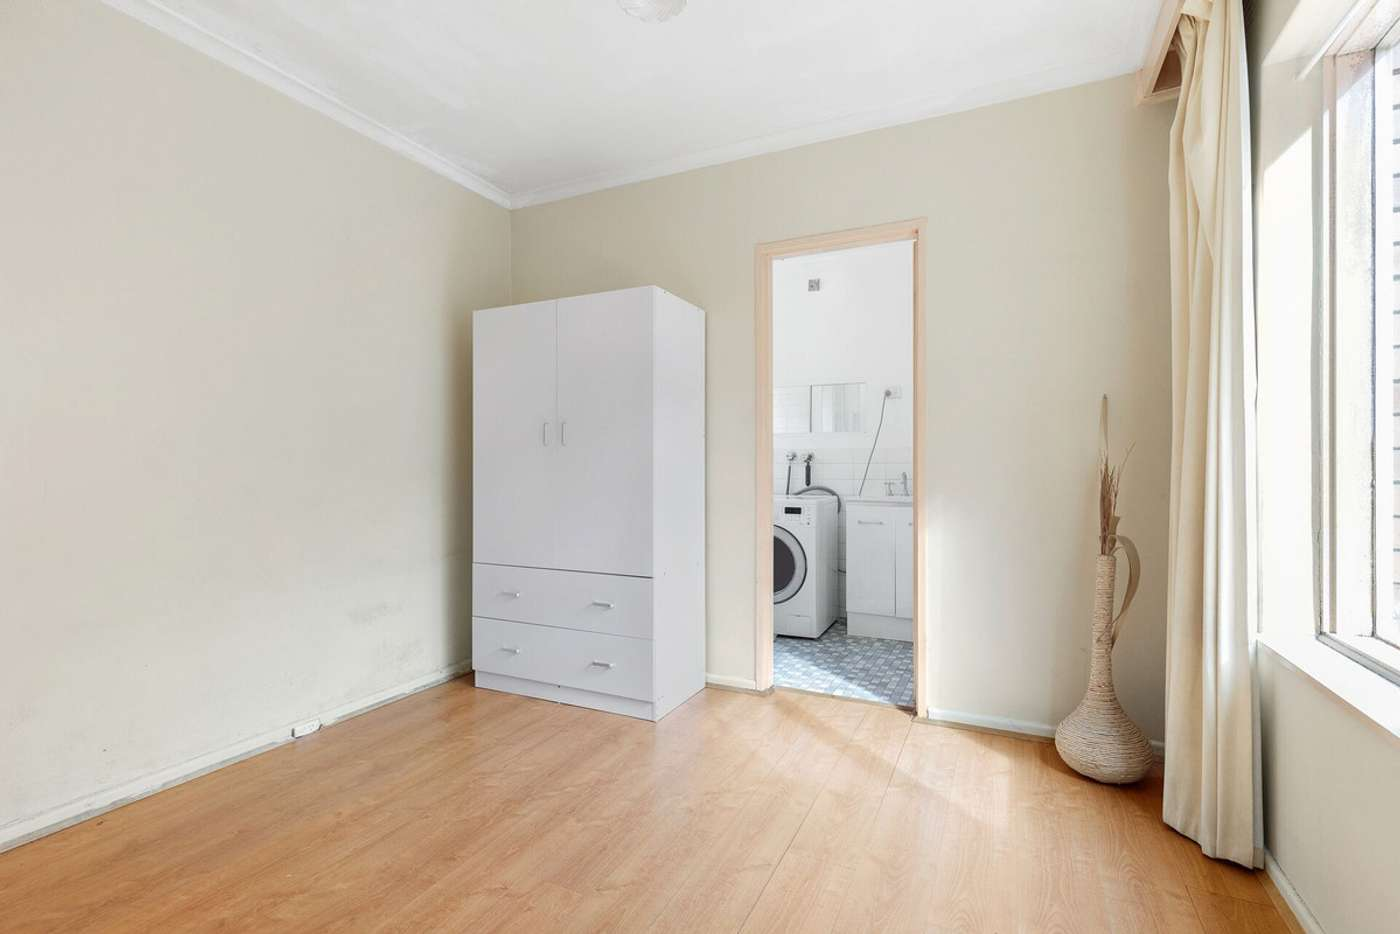 Main view of Homely unit listing, 5/176 Murrumbeena Road, Murrumbeena VIC 3163